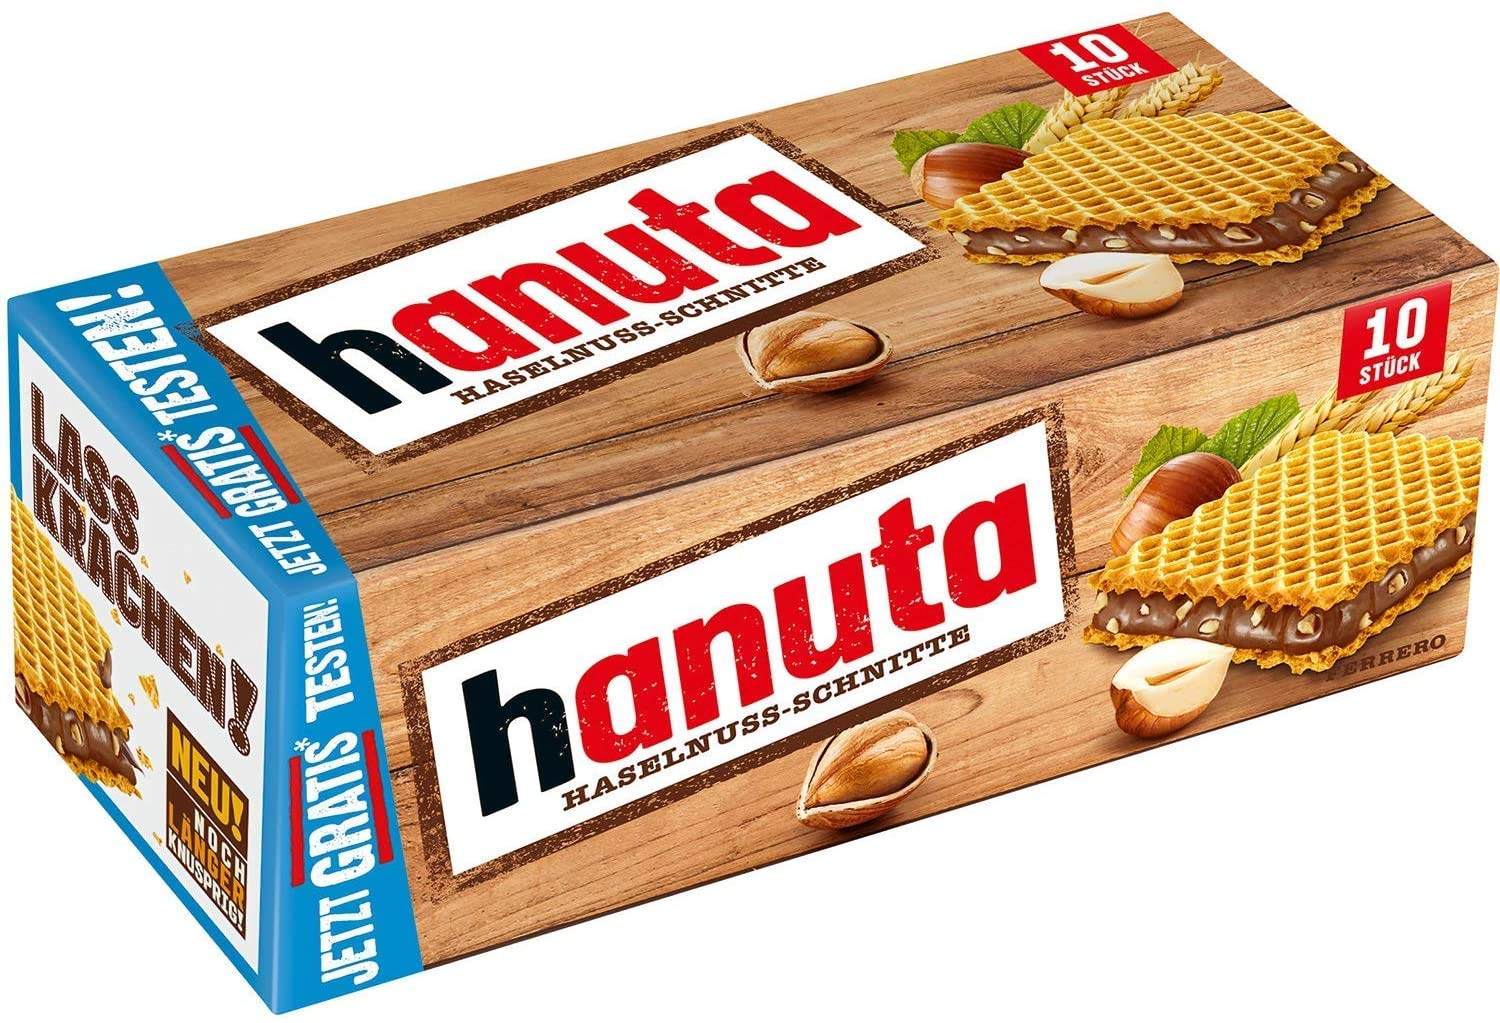 Ferrero Hanuta Wafers Filled with Hazelnut Cream (10 Pcs Box)